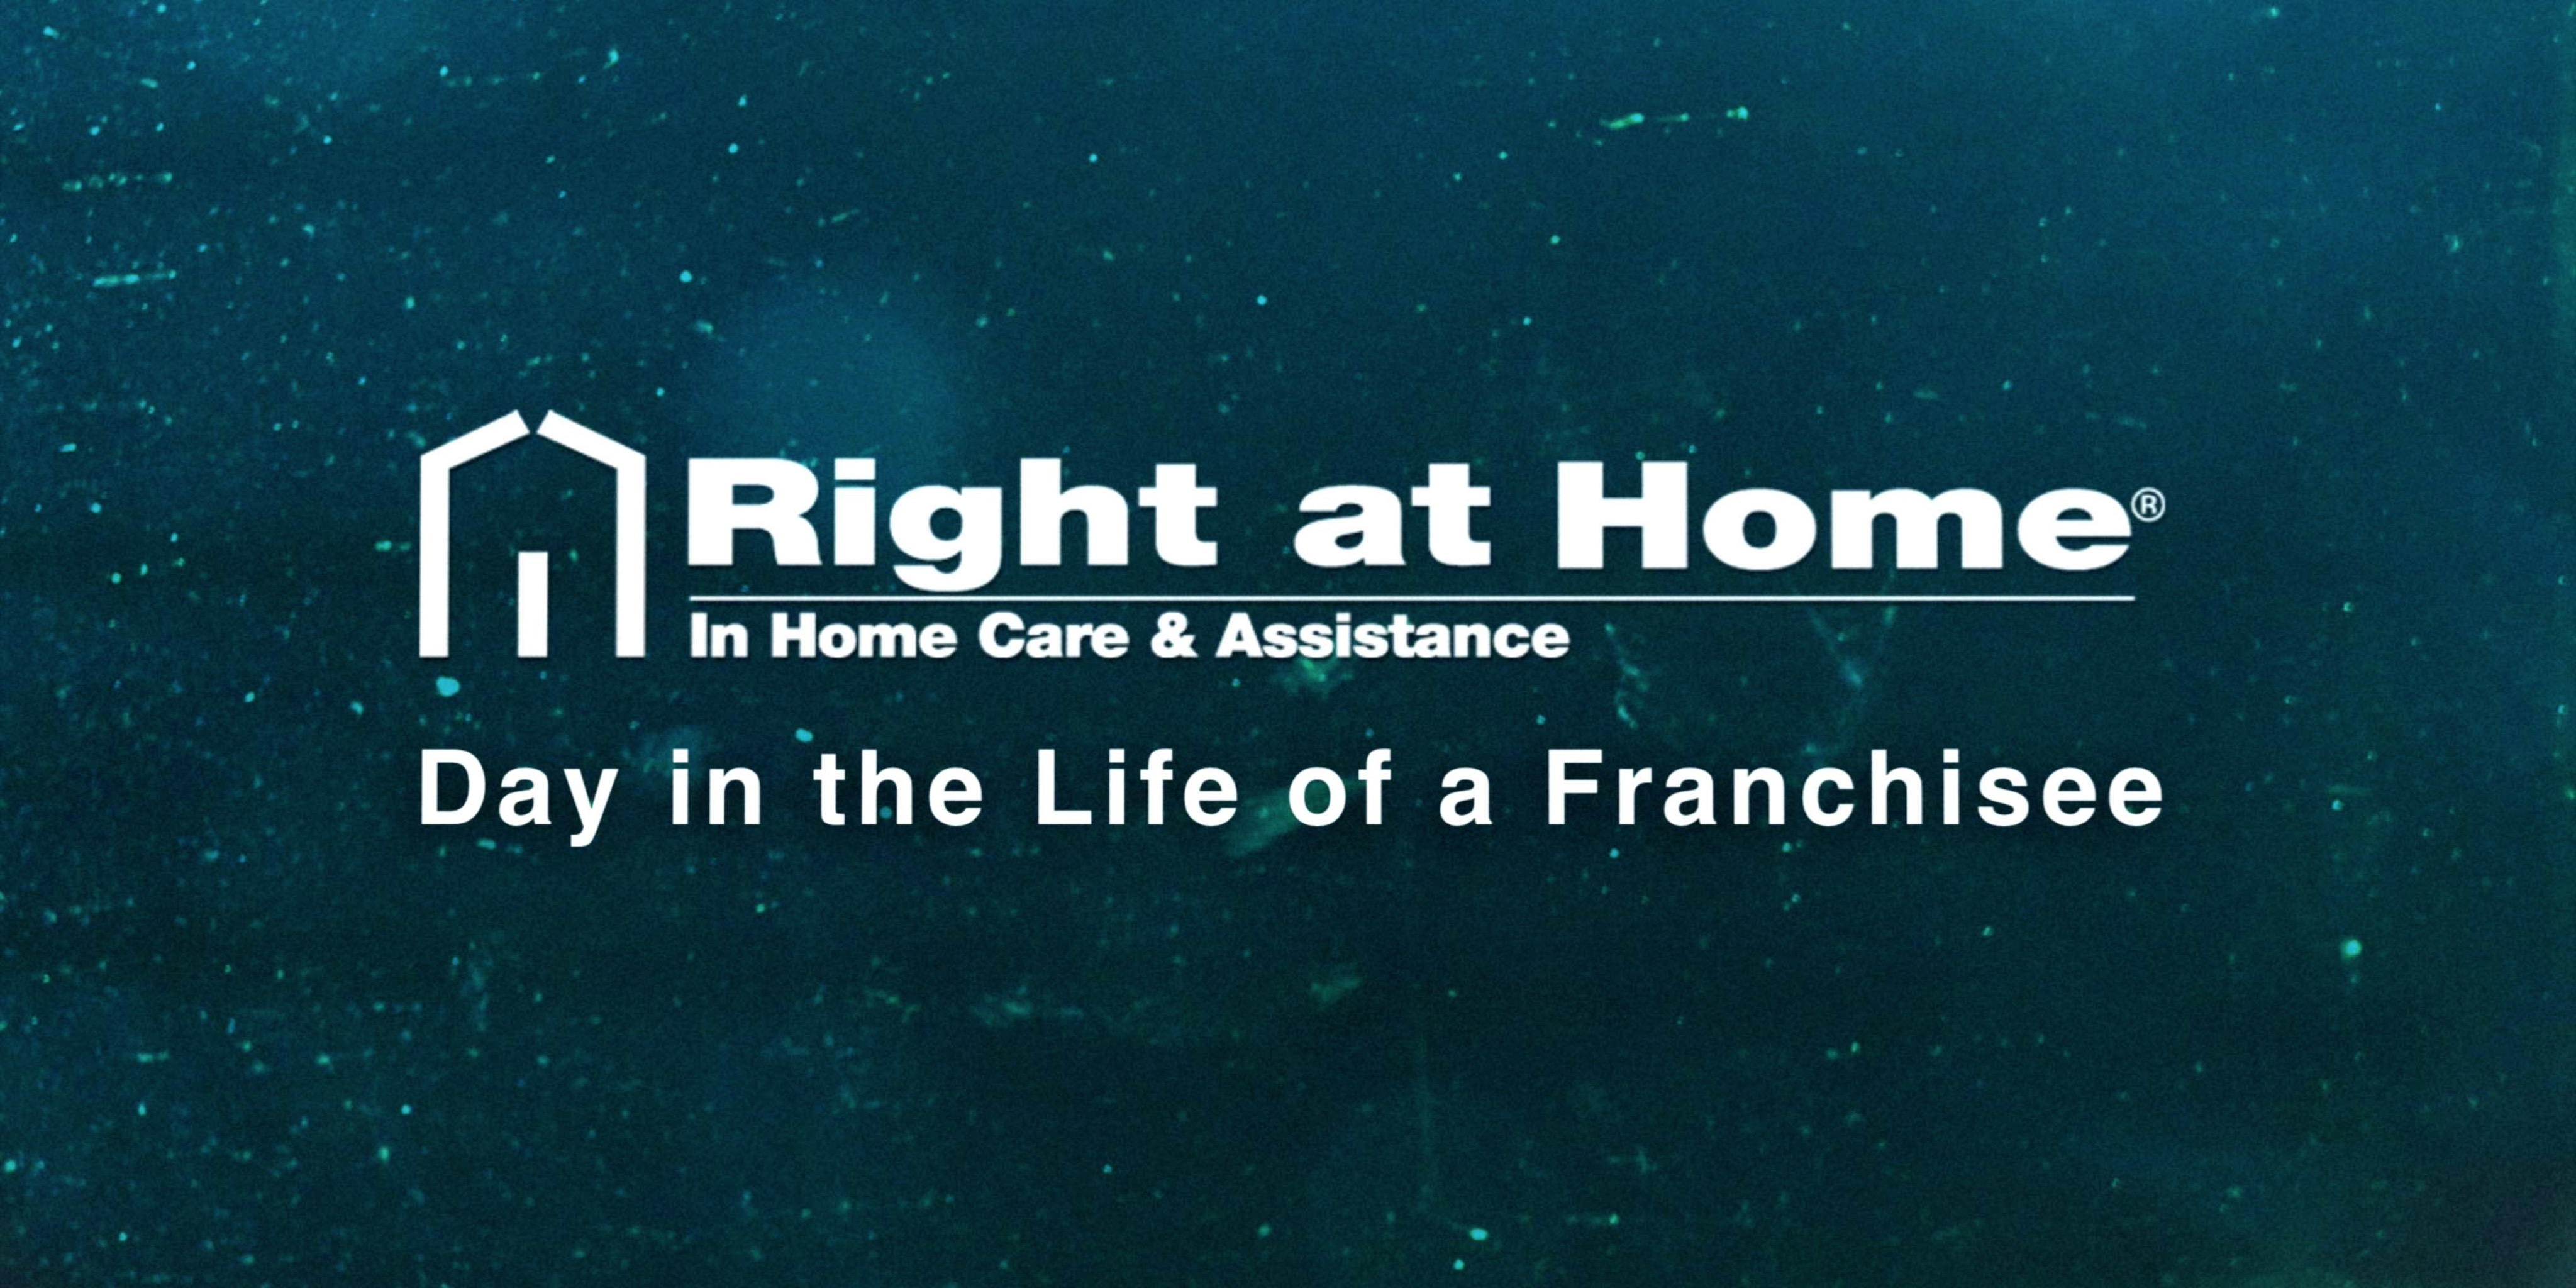 Day in the Life of a Right at Home Franchisee